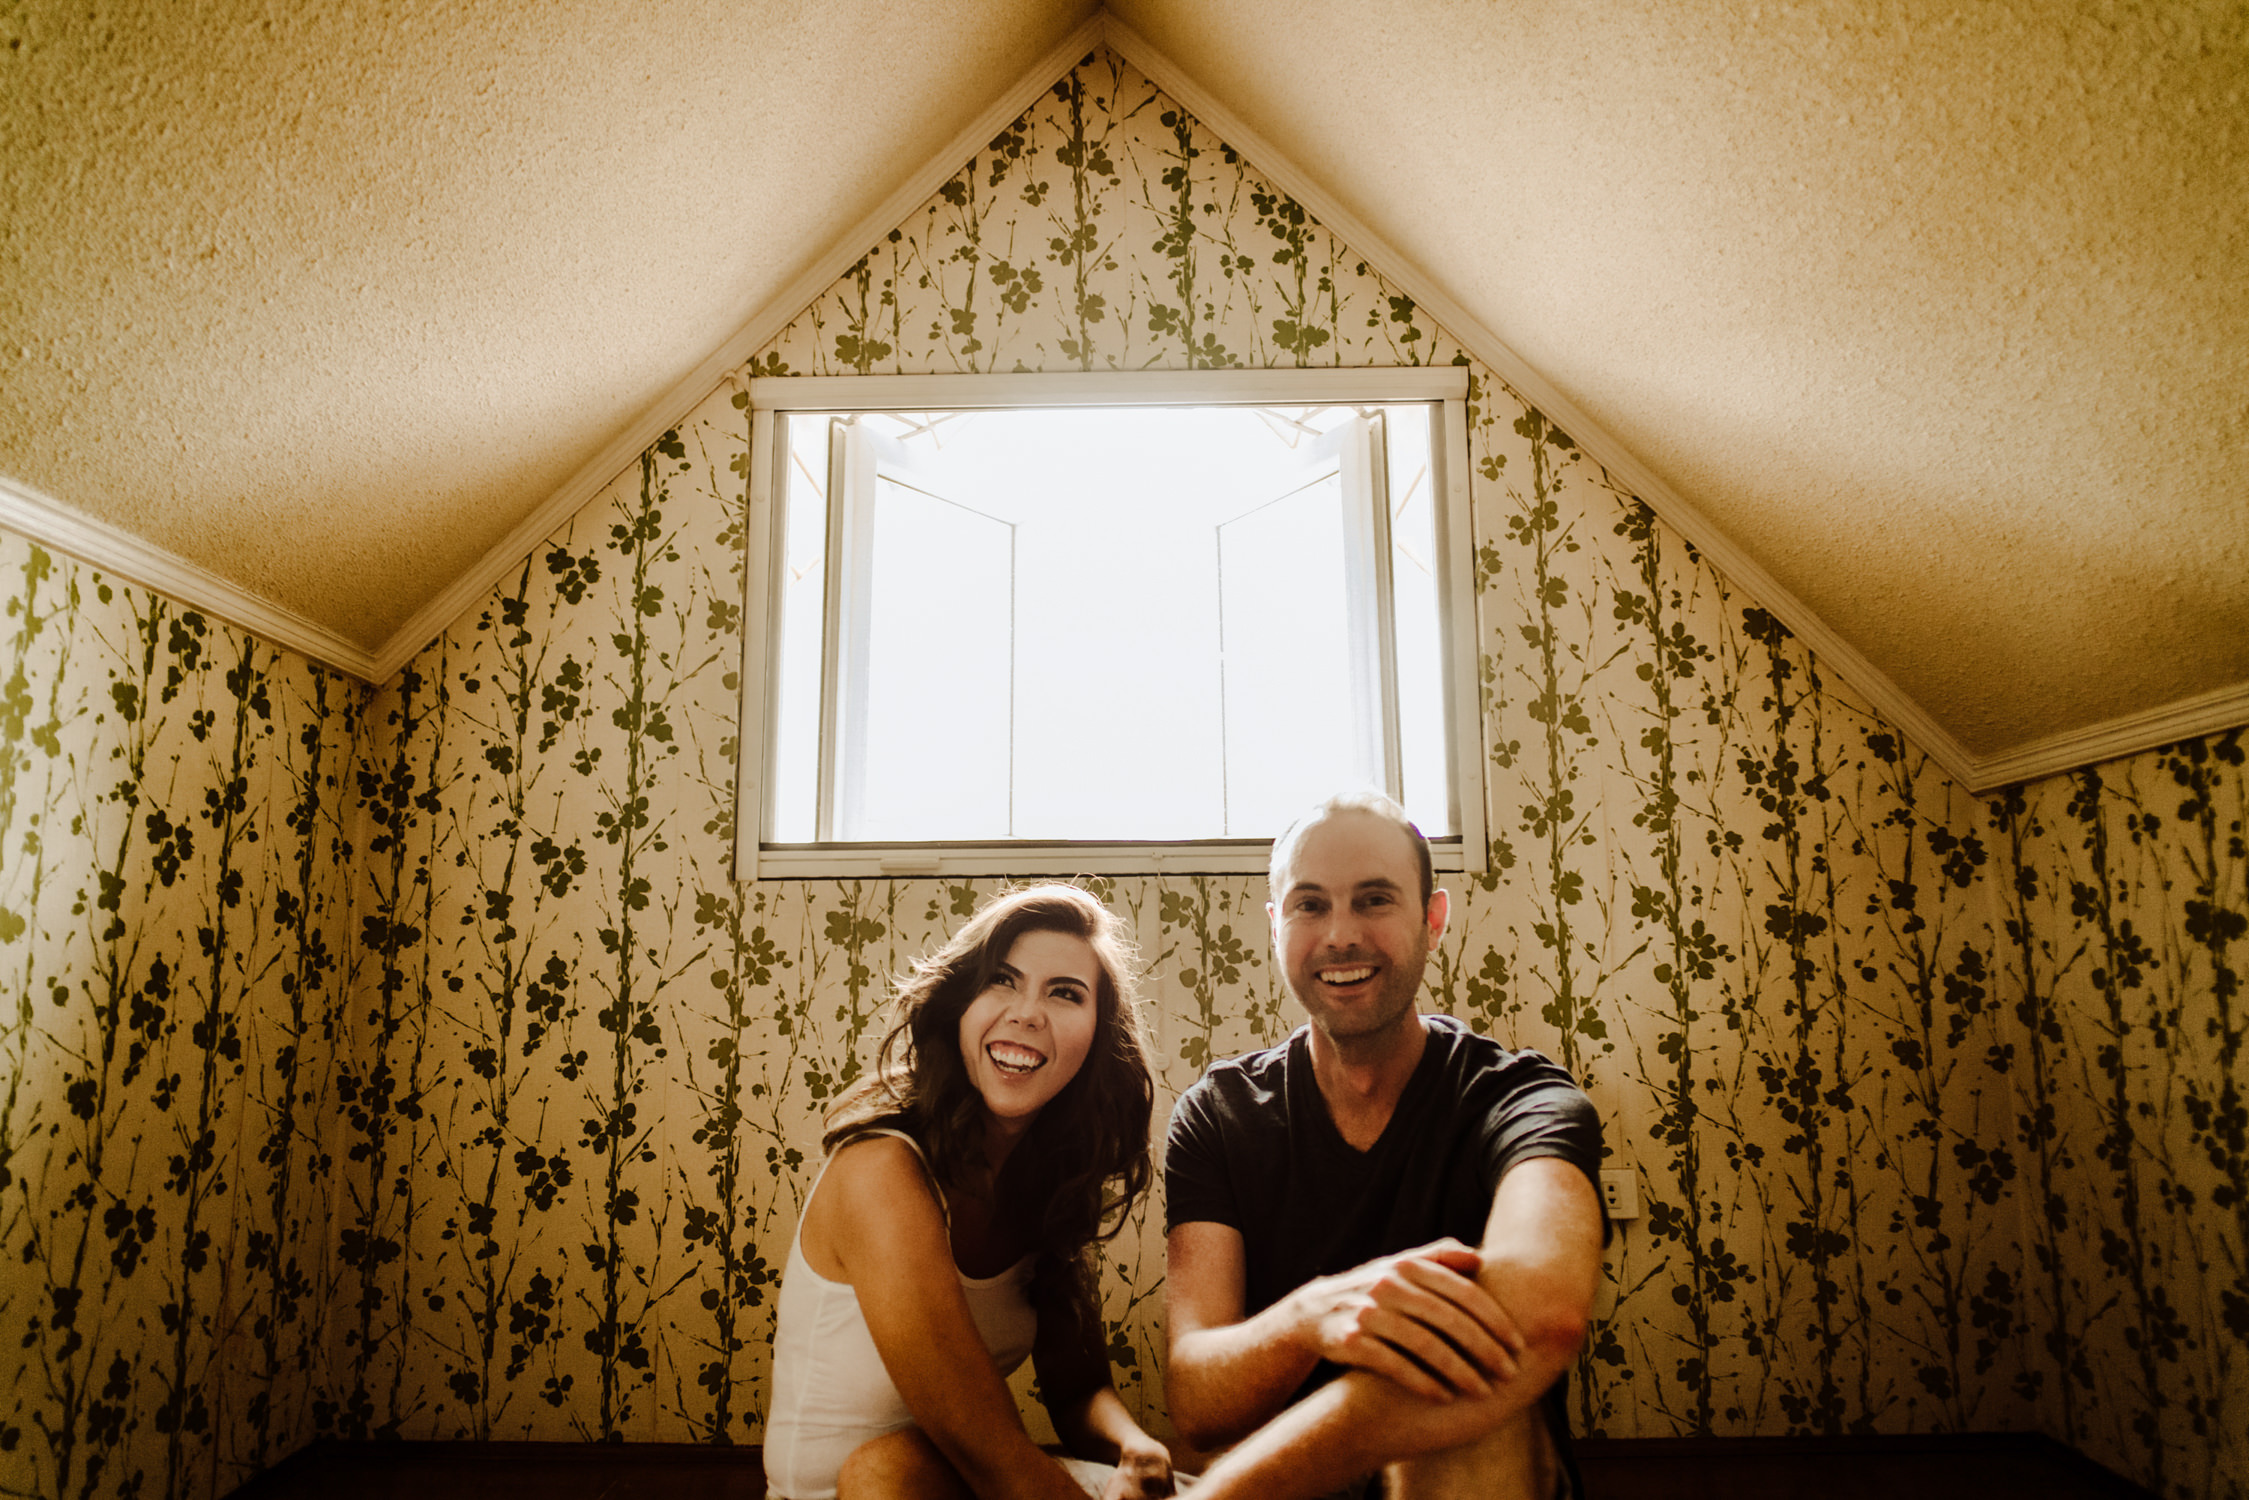 Oak St Studios - Gaile and Ben Intimate Engagement Session